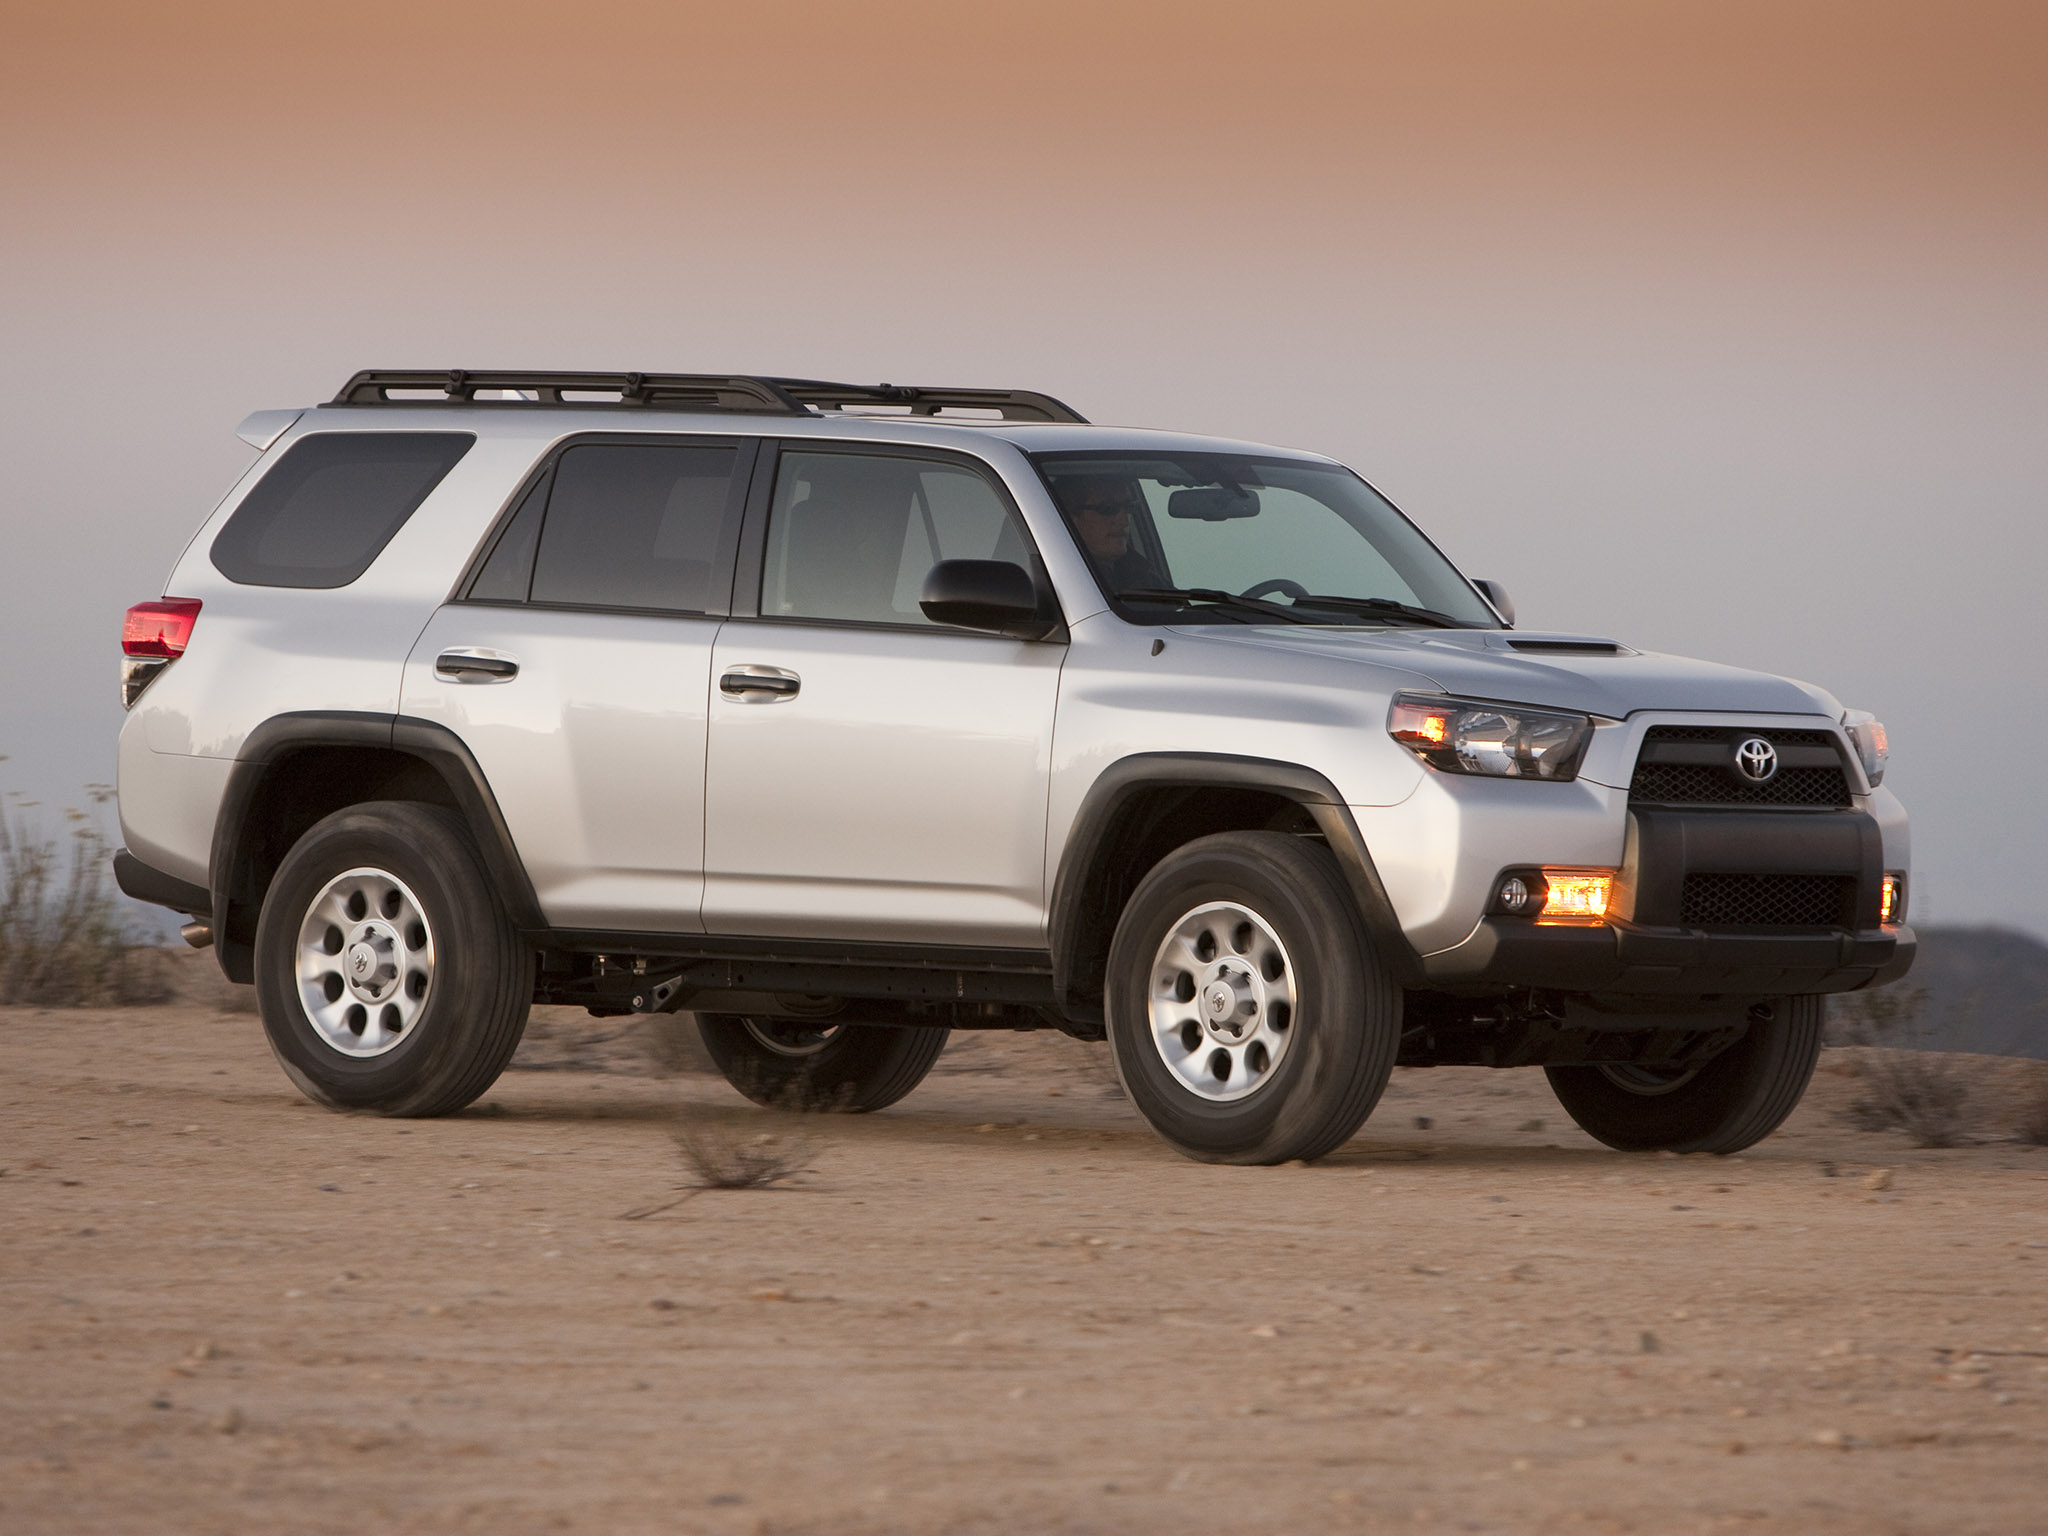 toyota 4runner trail 2010 toyota 4runner trail 2010 photo 07 car in pictures car photo gallery. Black Bedroom Furniture Sets. Home Design Ideas